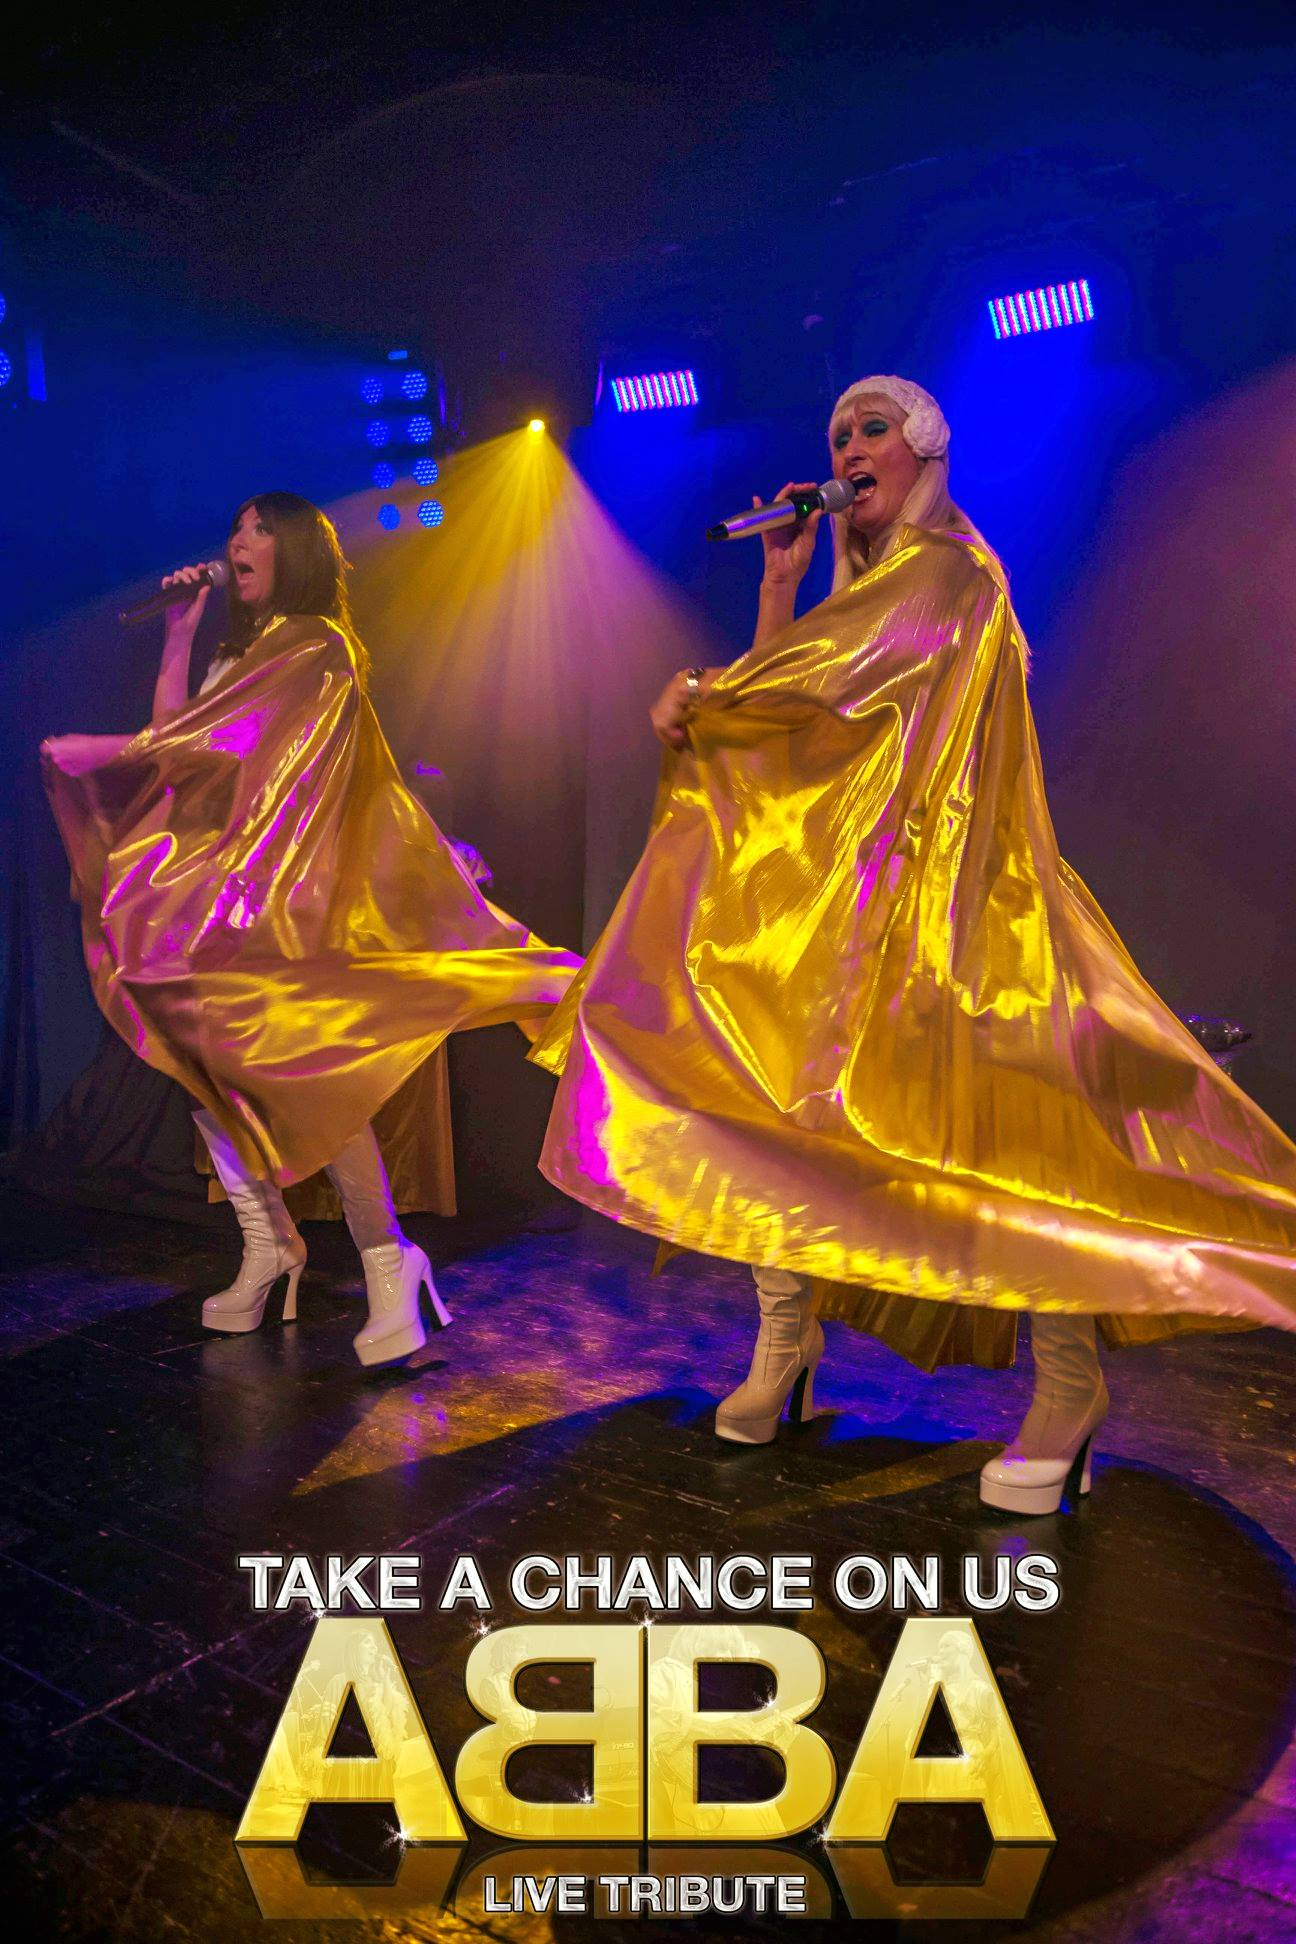 ABBA TRIBUTE ..TAKE A CHANCE ON US